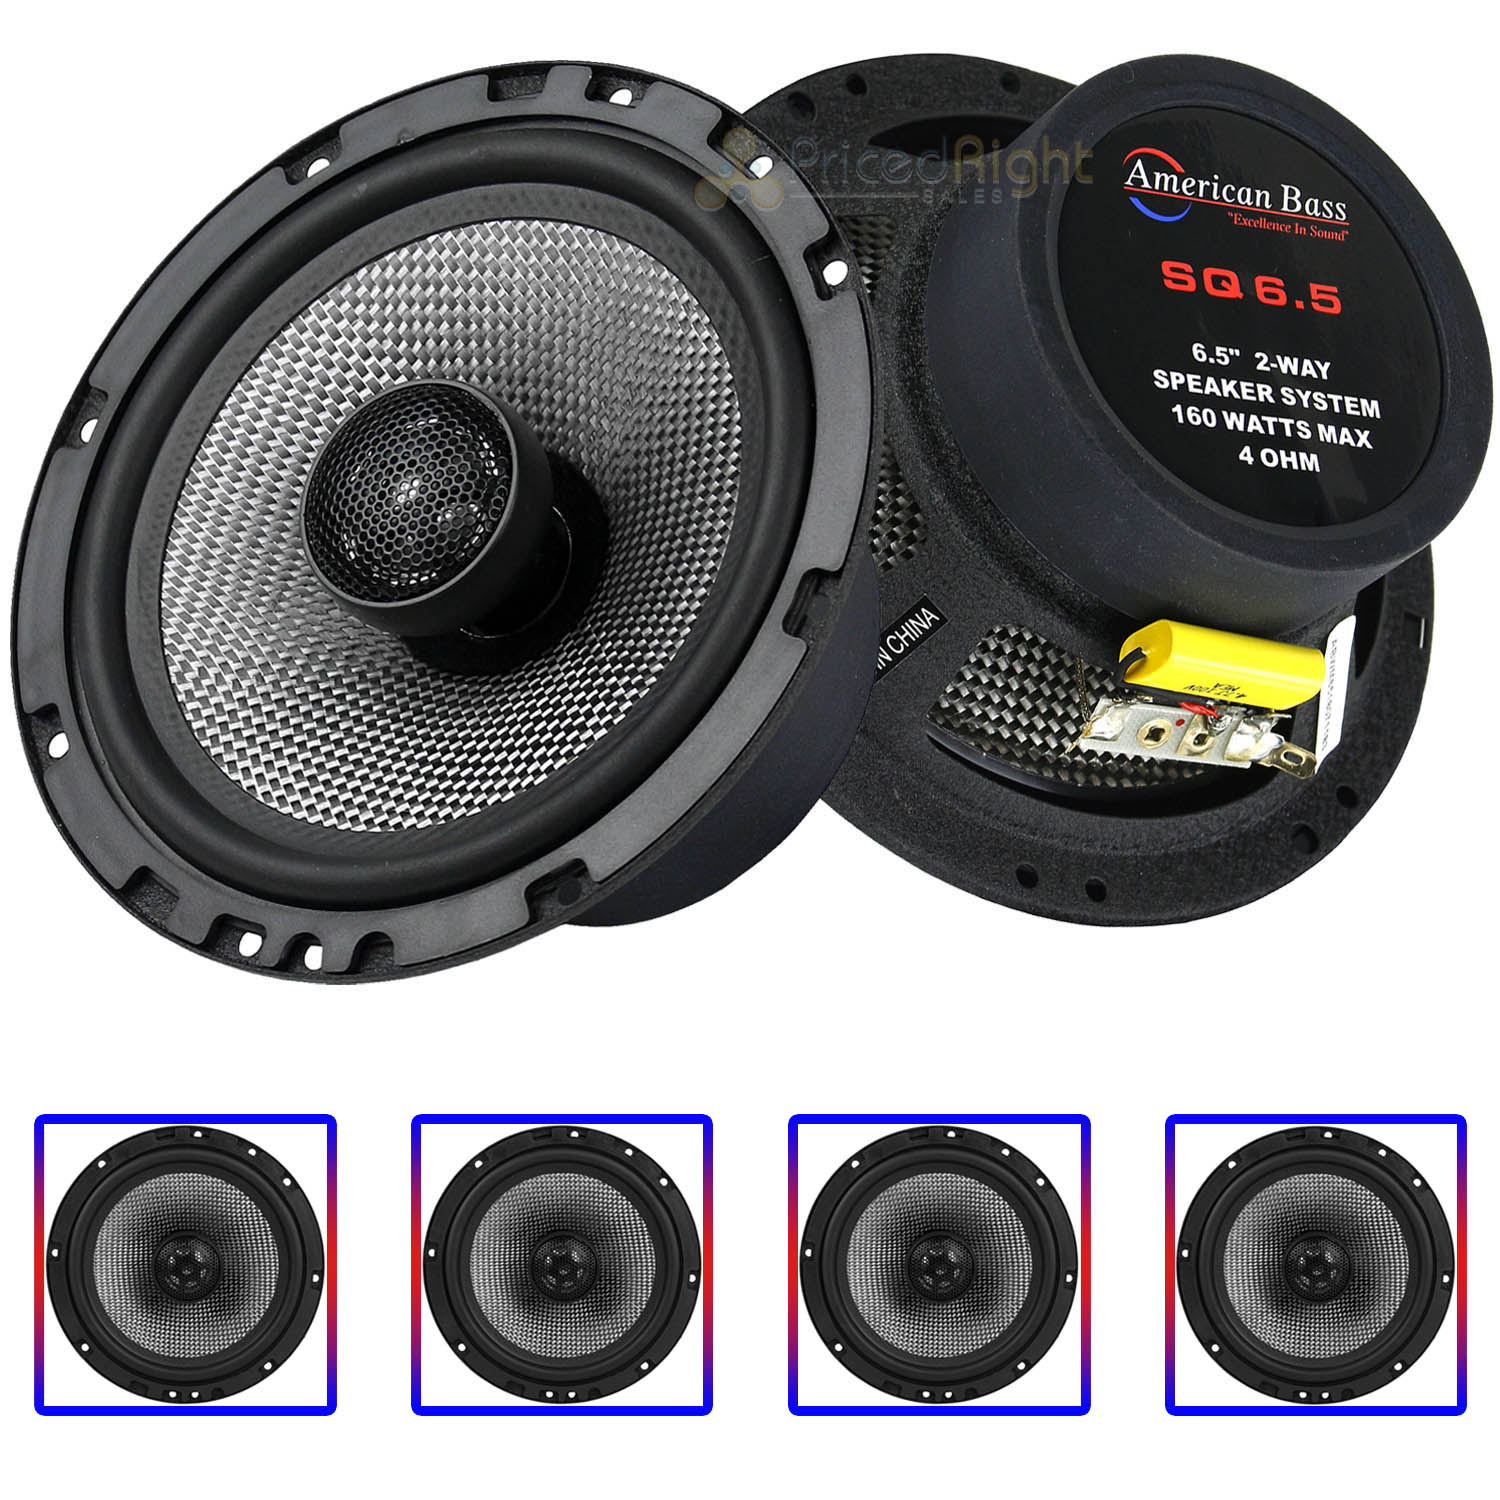 "4 Pack 6.5"" 2-Way Coaxial Car Audio Speakers 160W Max Grills American Bass SQ6.5"